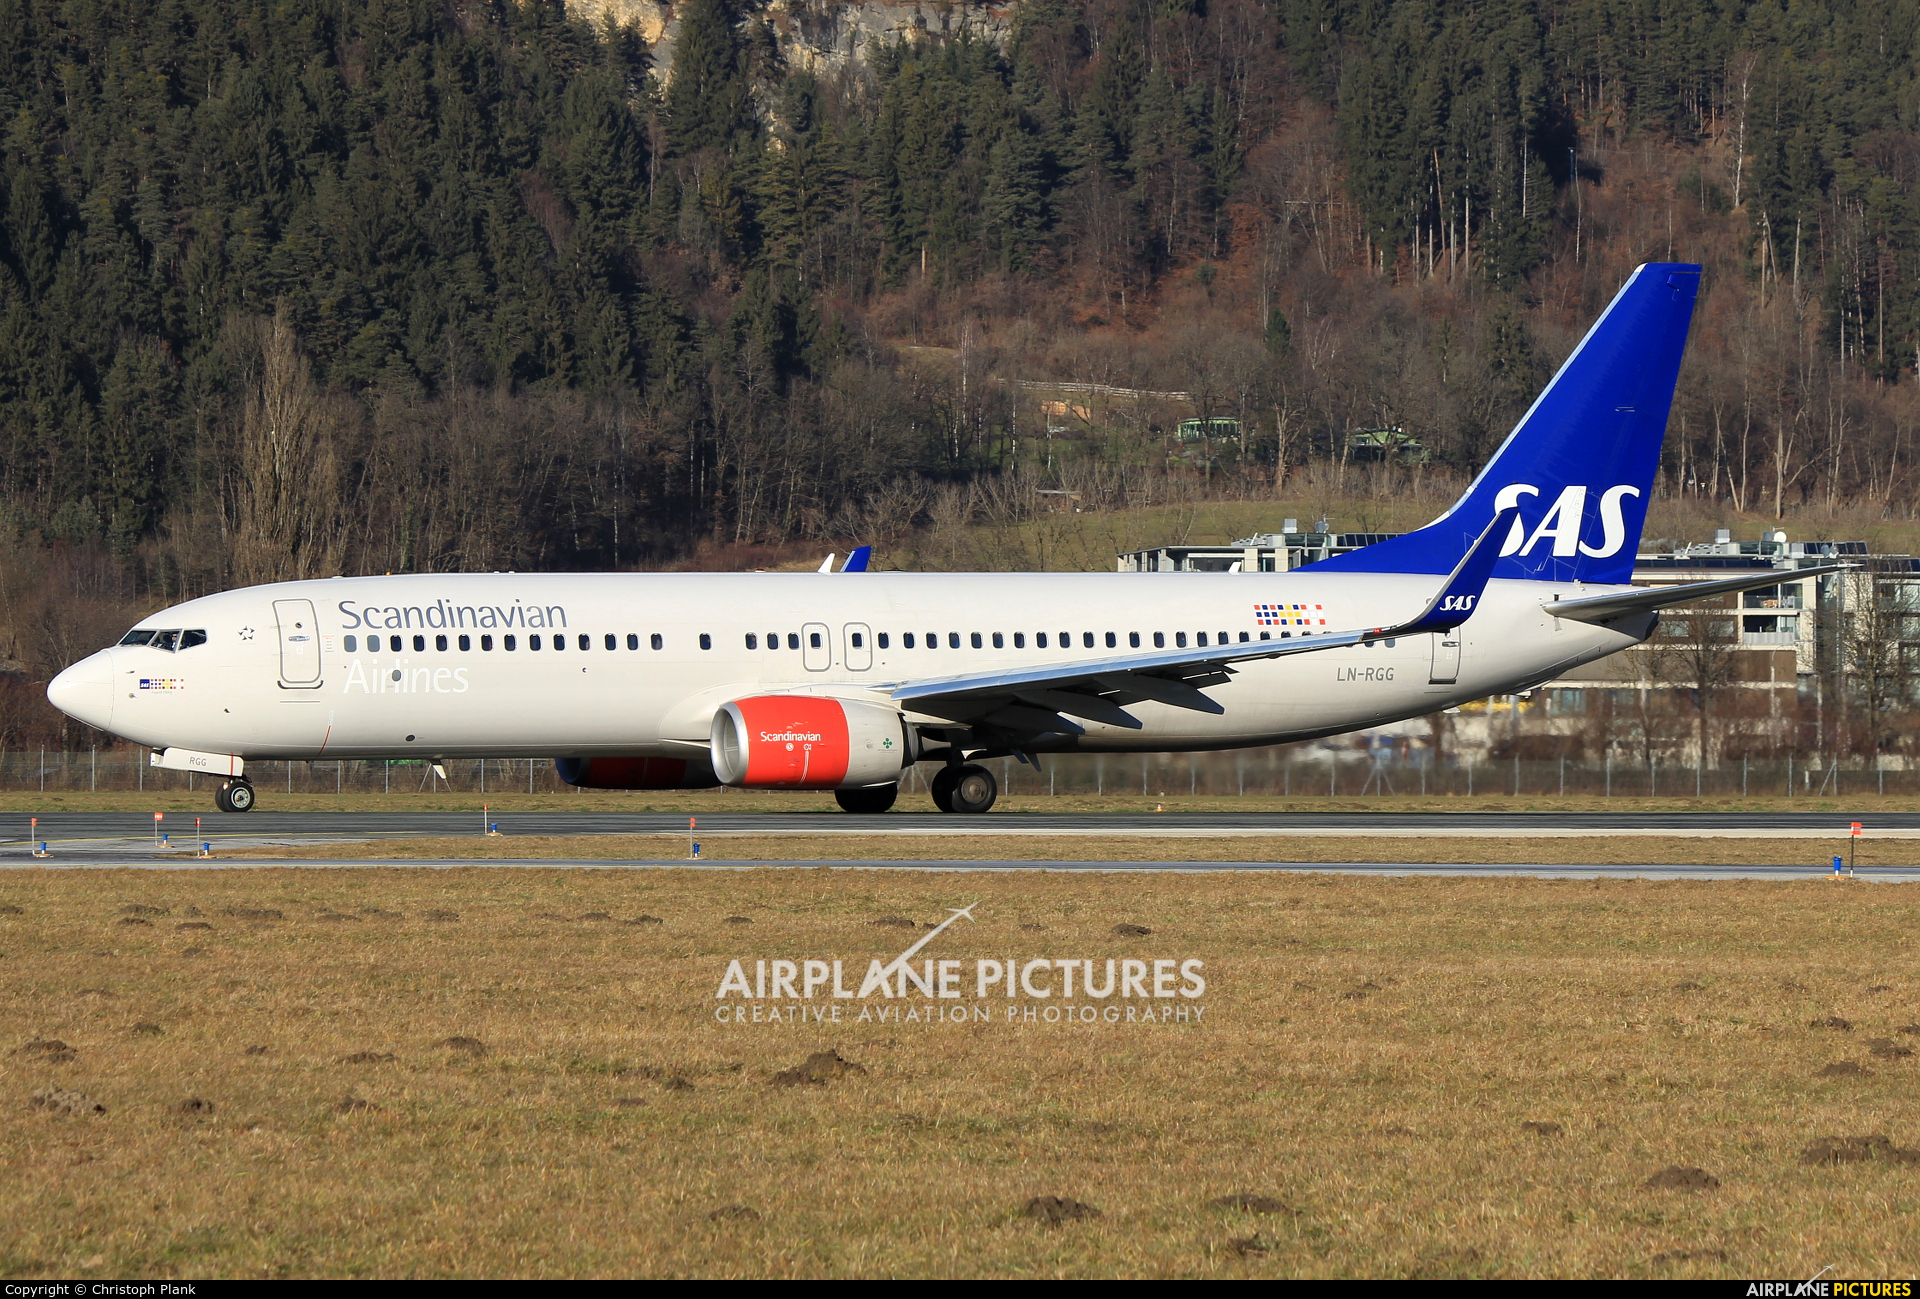 SAS - Scandinavian Airlines LN-RGG aircraft at Innsbruck